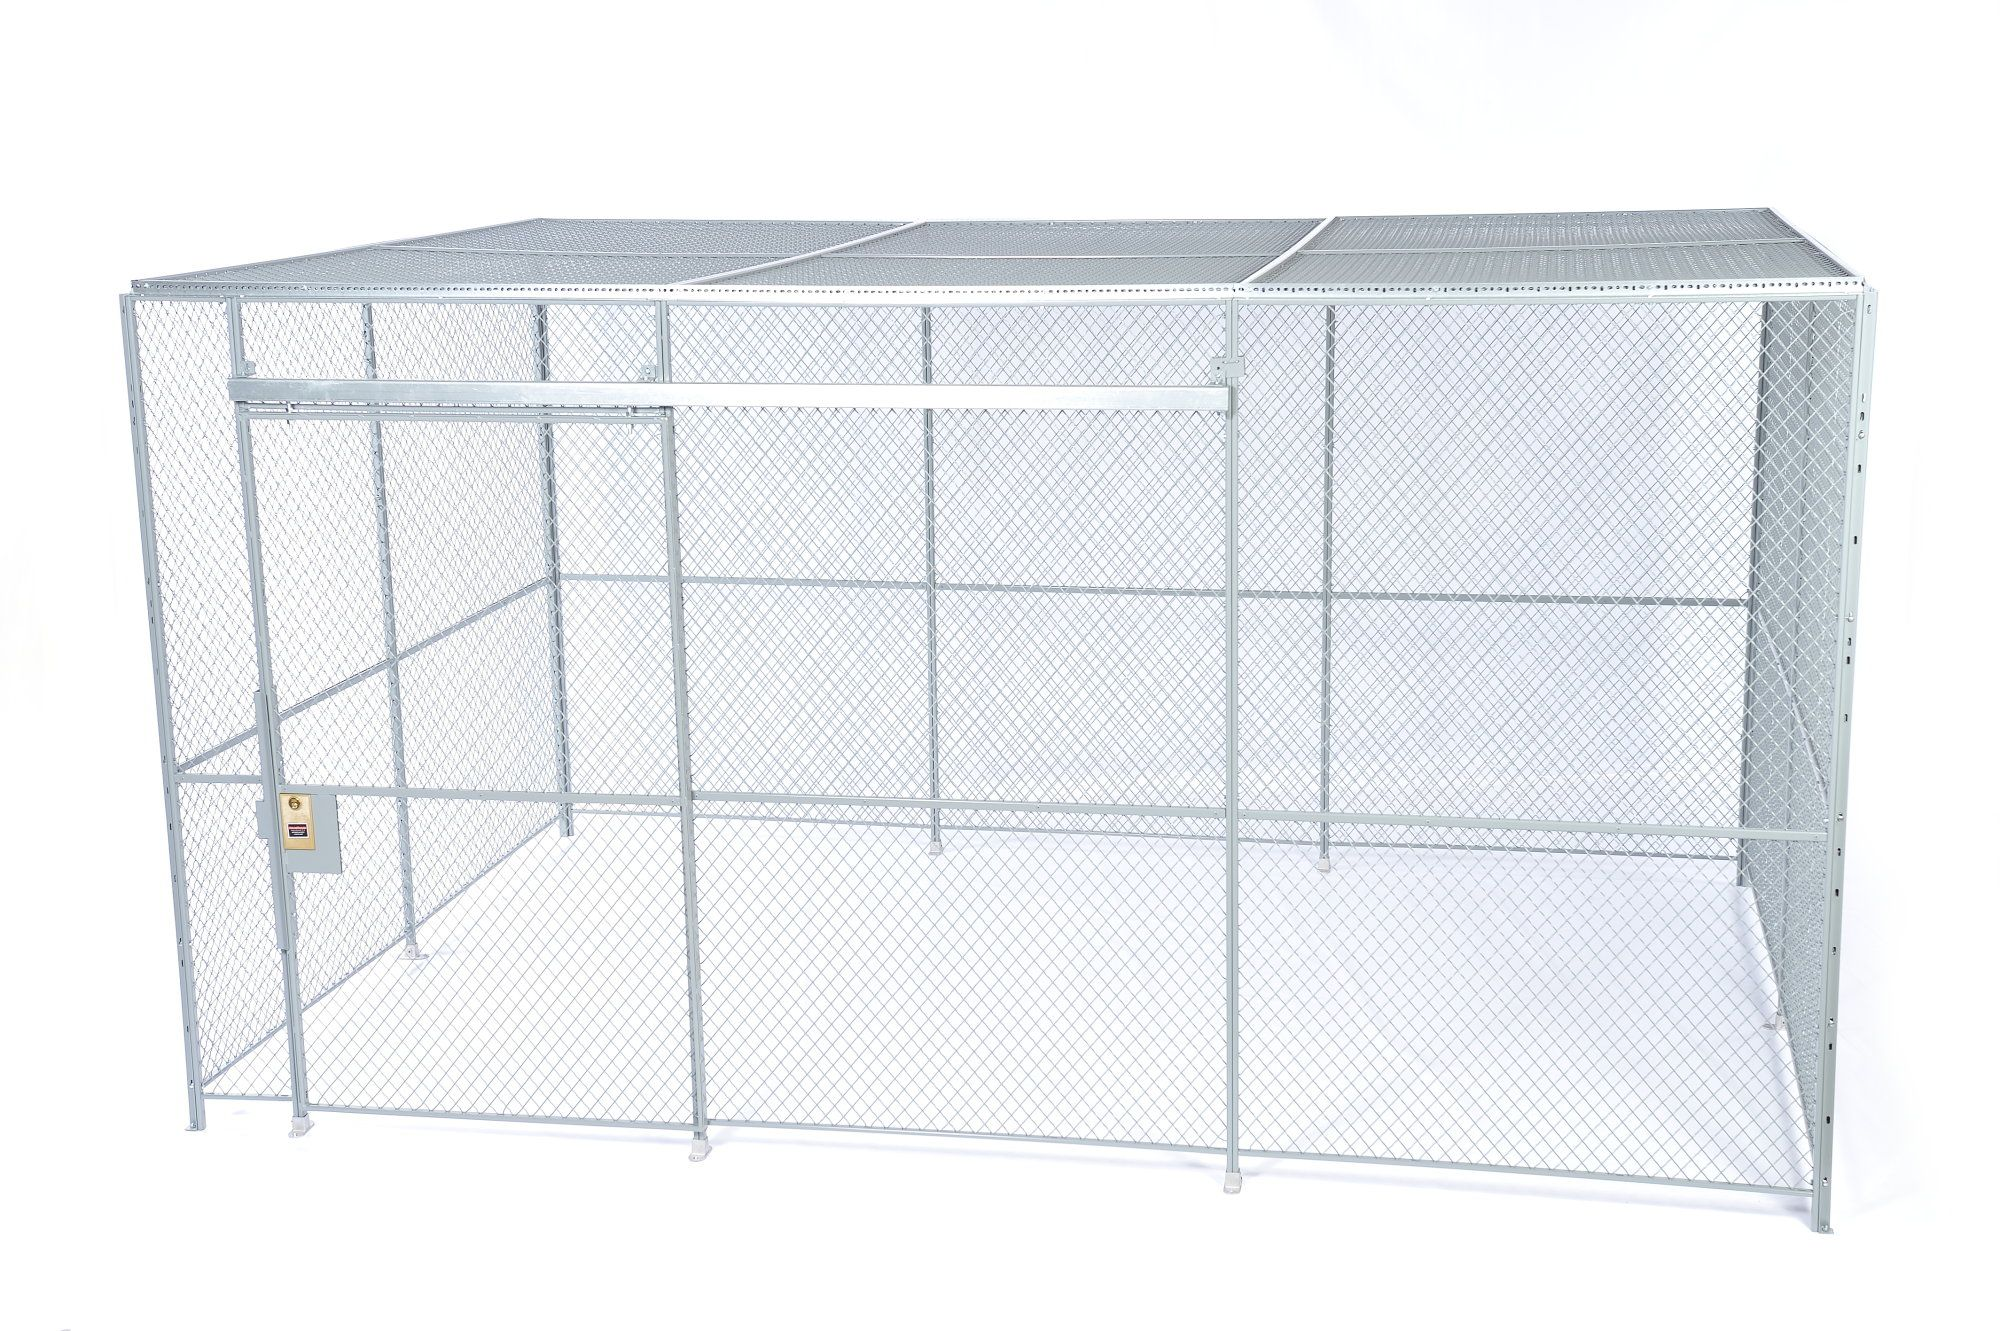 4-sided wire mesh enclosure with a standard sliding door. Cage ...